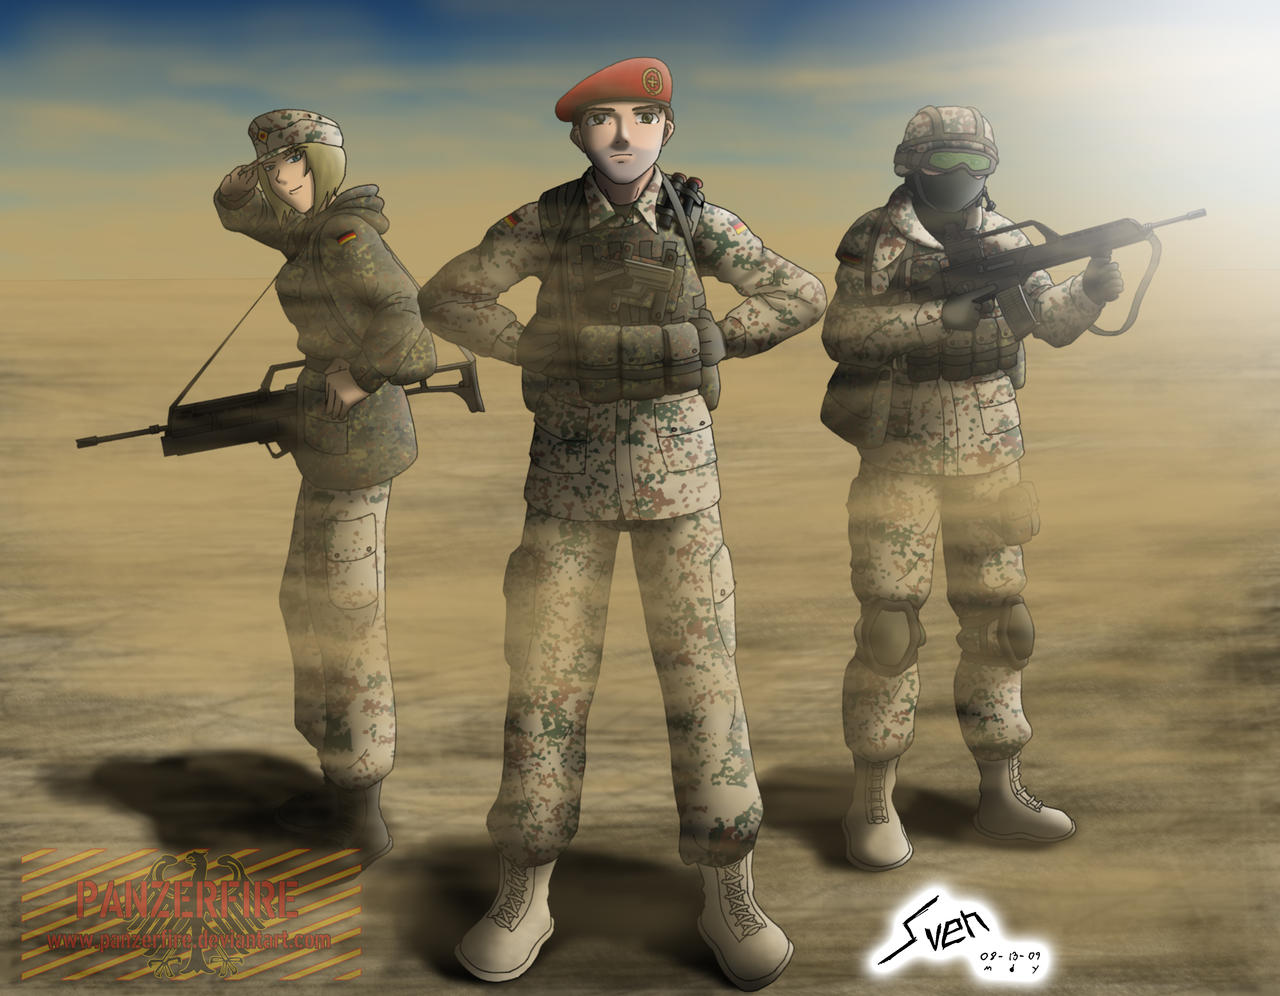 It's 'Ze' Germans by Panzerfire